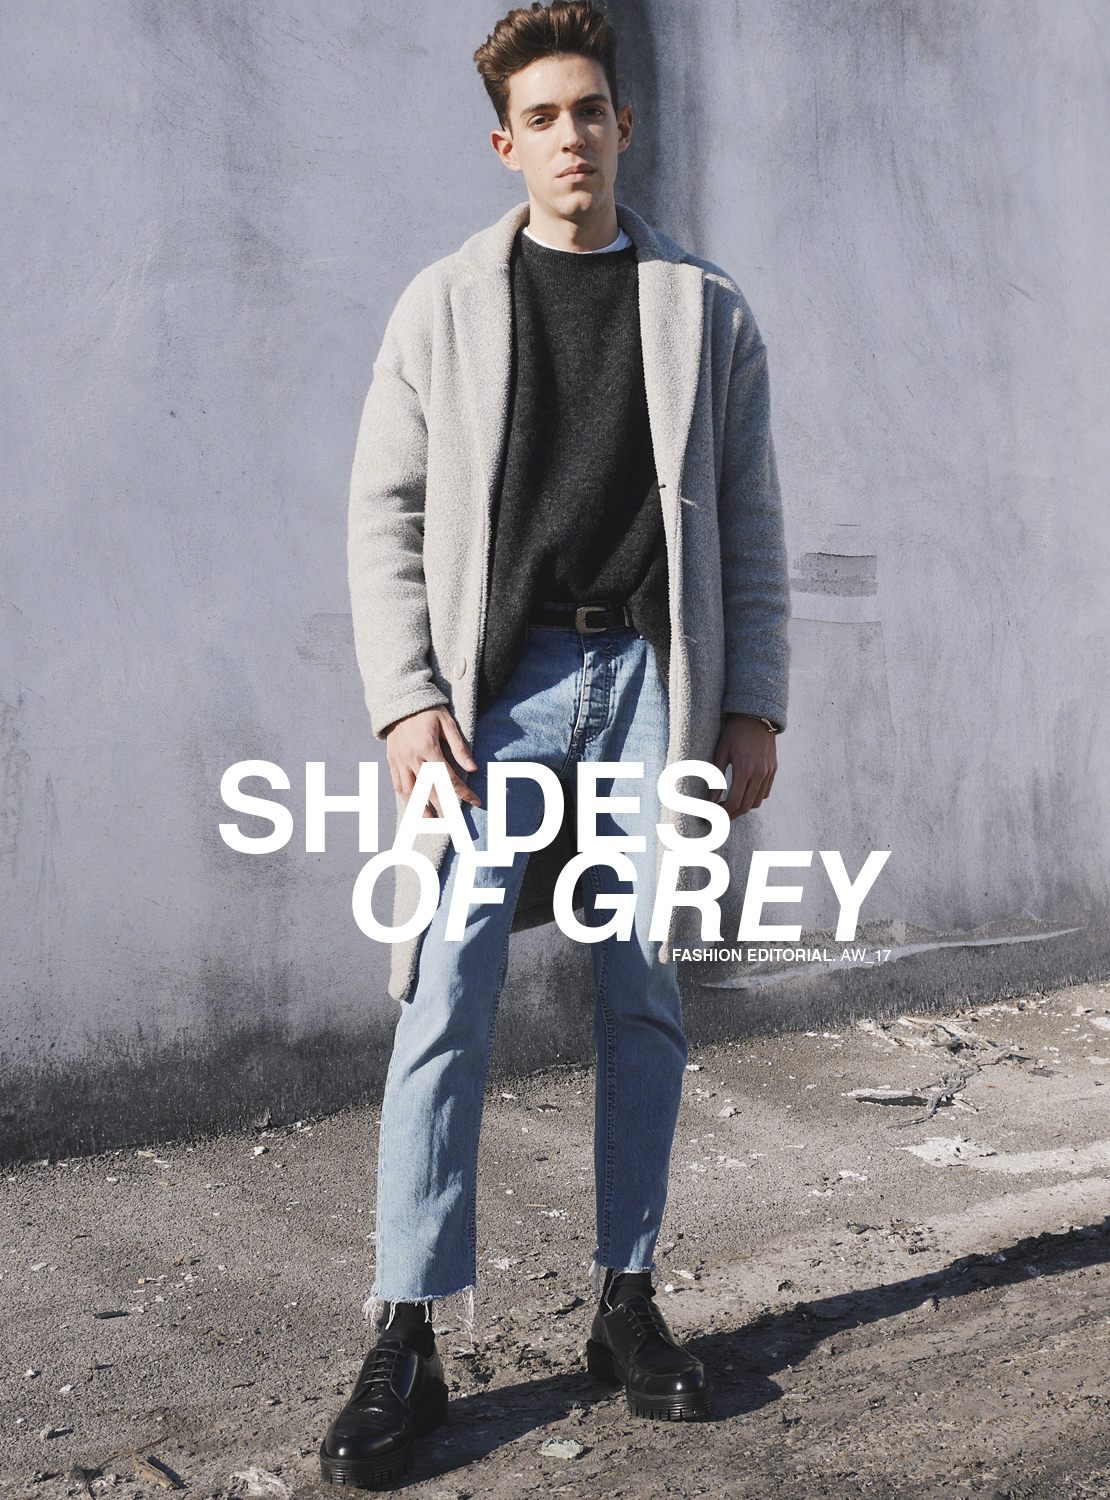 shadesofgrey-greycoat-manteau-gris-pull-knit-western-belt-levis-501-jean-black-rock-shoes-derbies-editorial-fashion-aw17